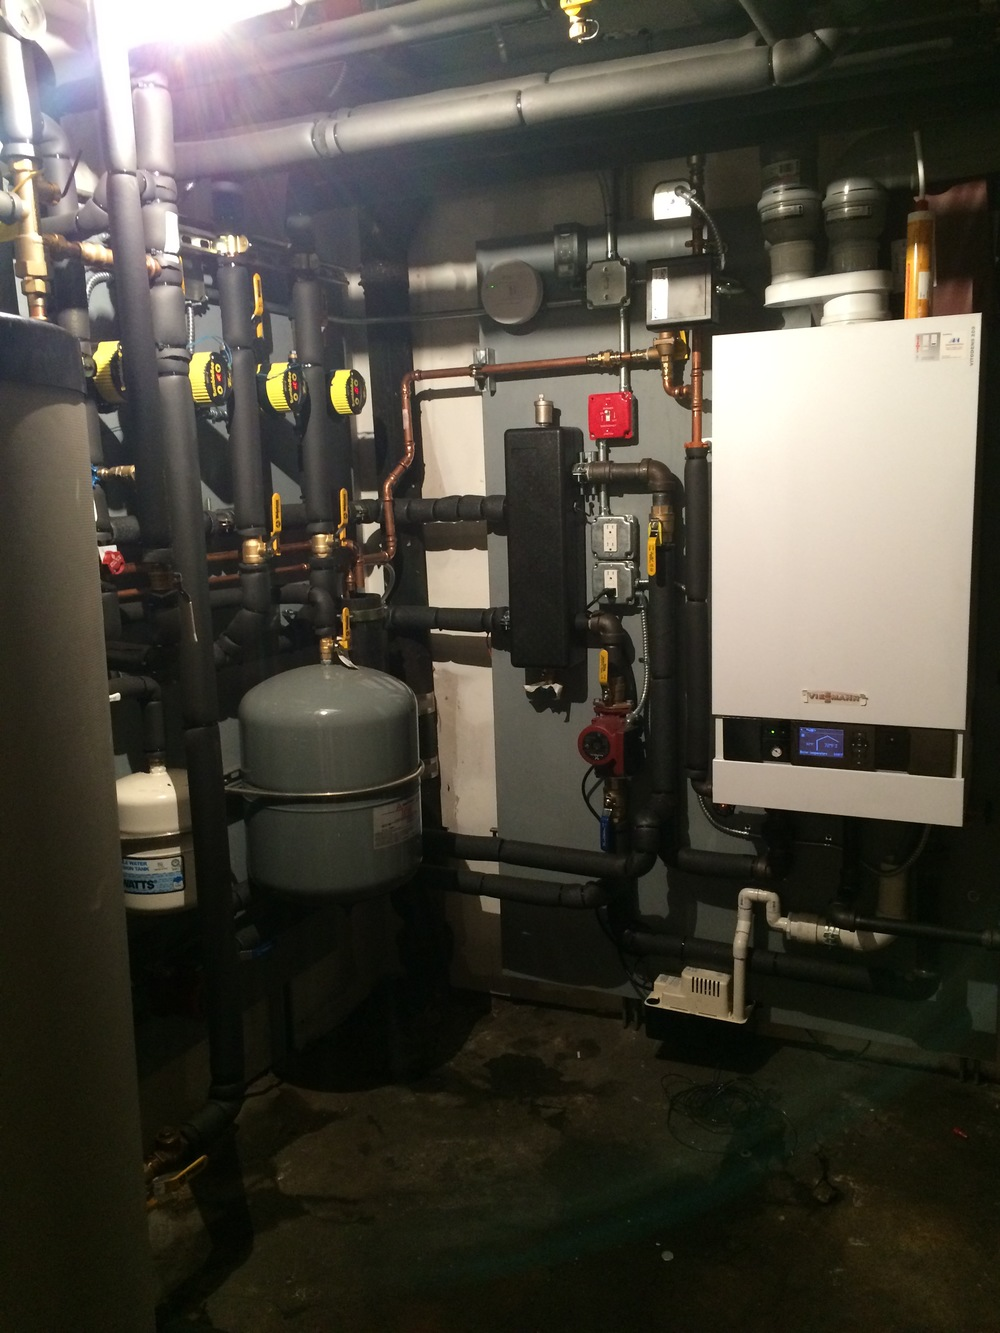 Absolute Mechanical is a licensed heating contractor operating in New York. We specialize in the installation and correction of the installation of steam and hydronic heating systems.